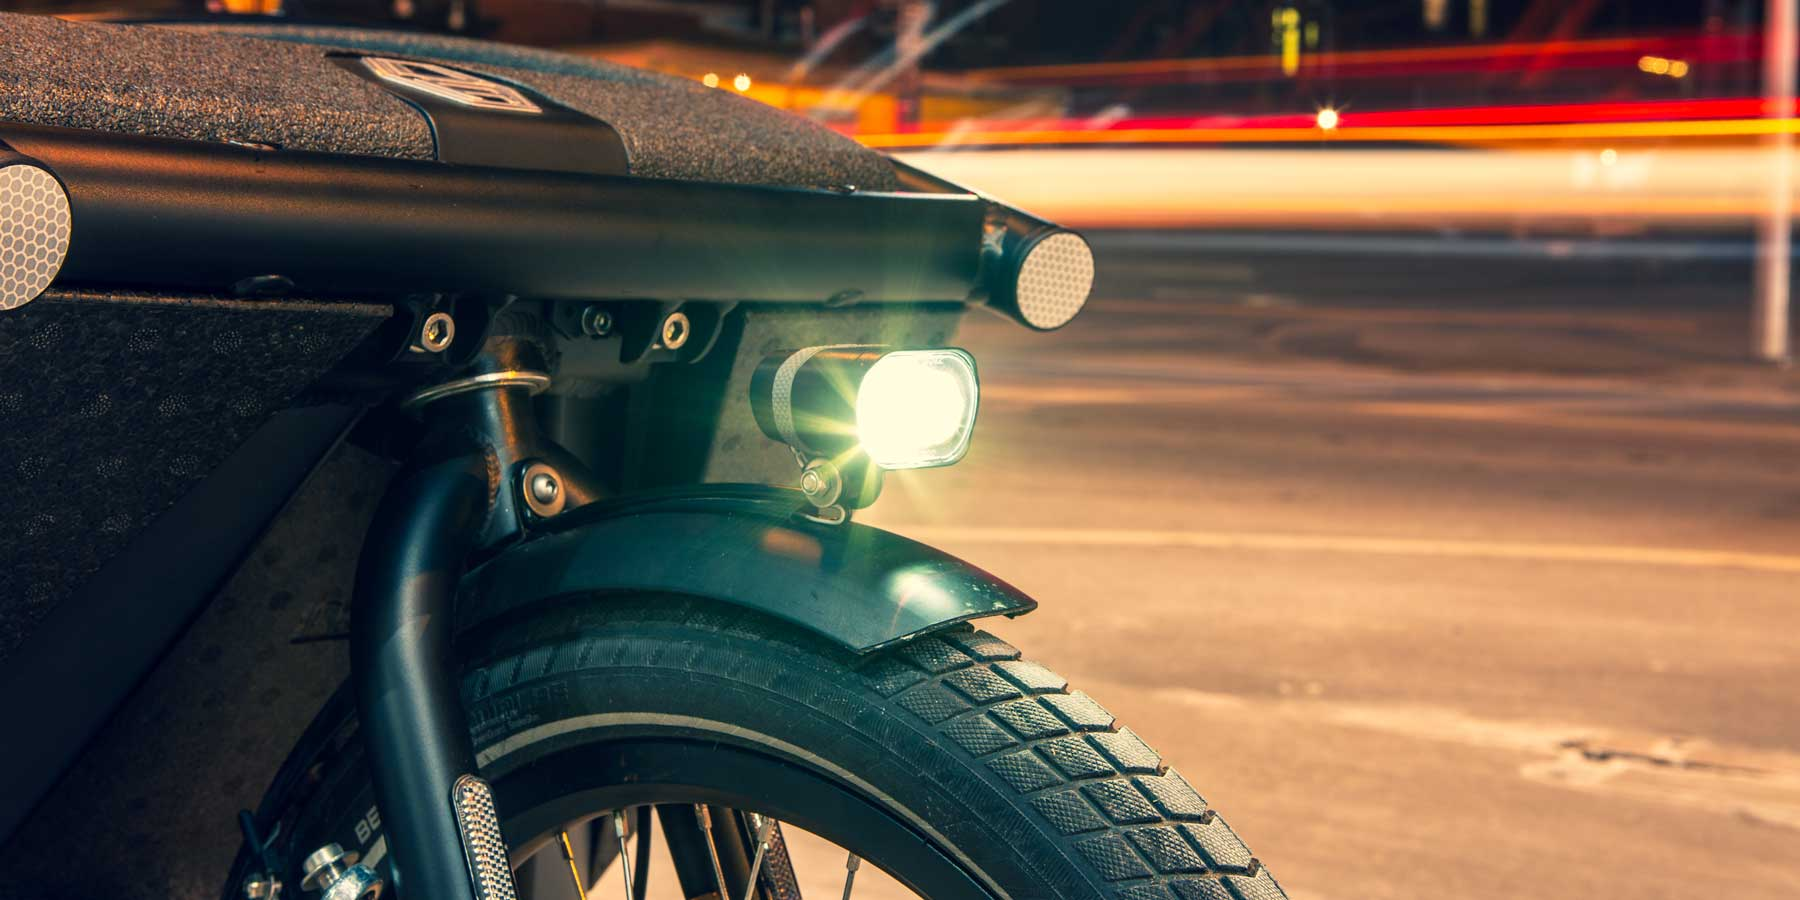 E-Bike Lighting